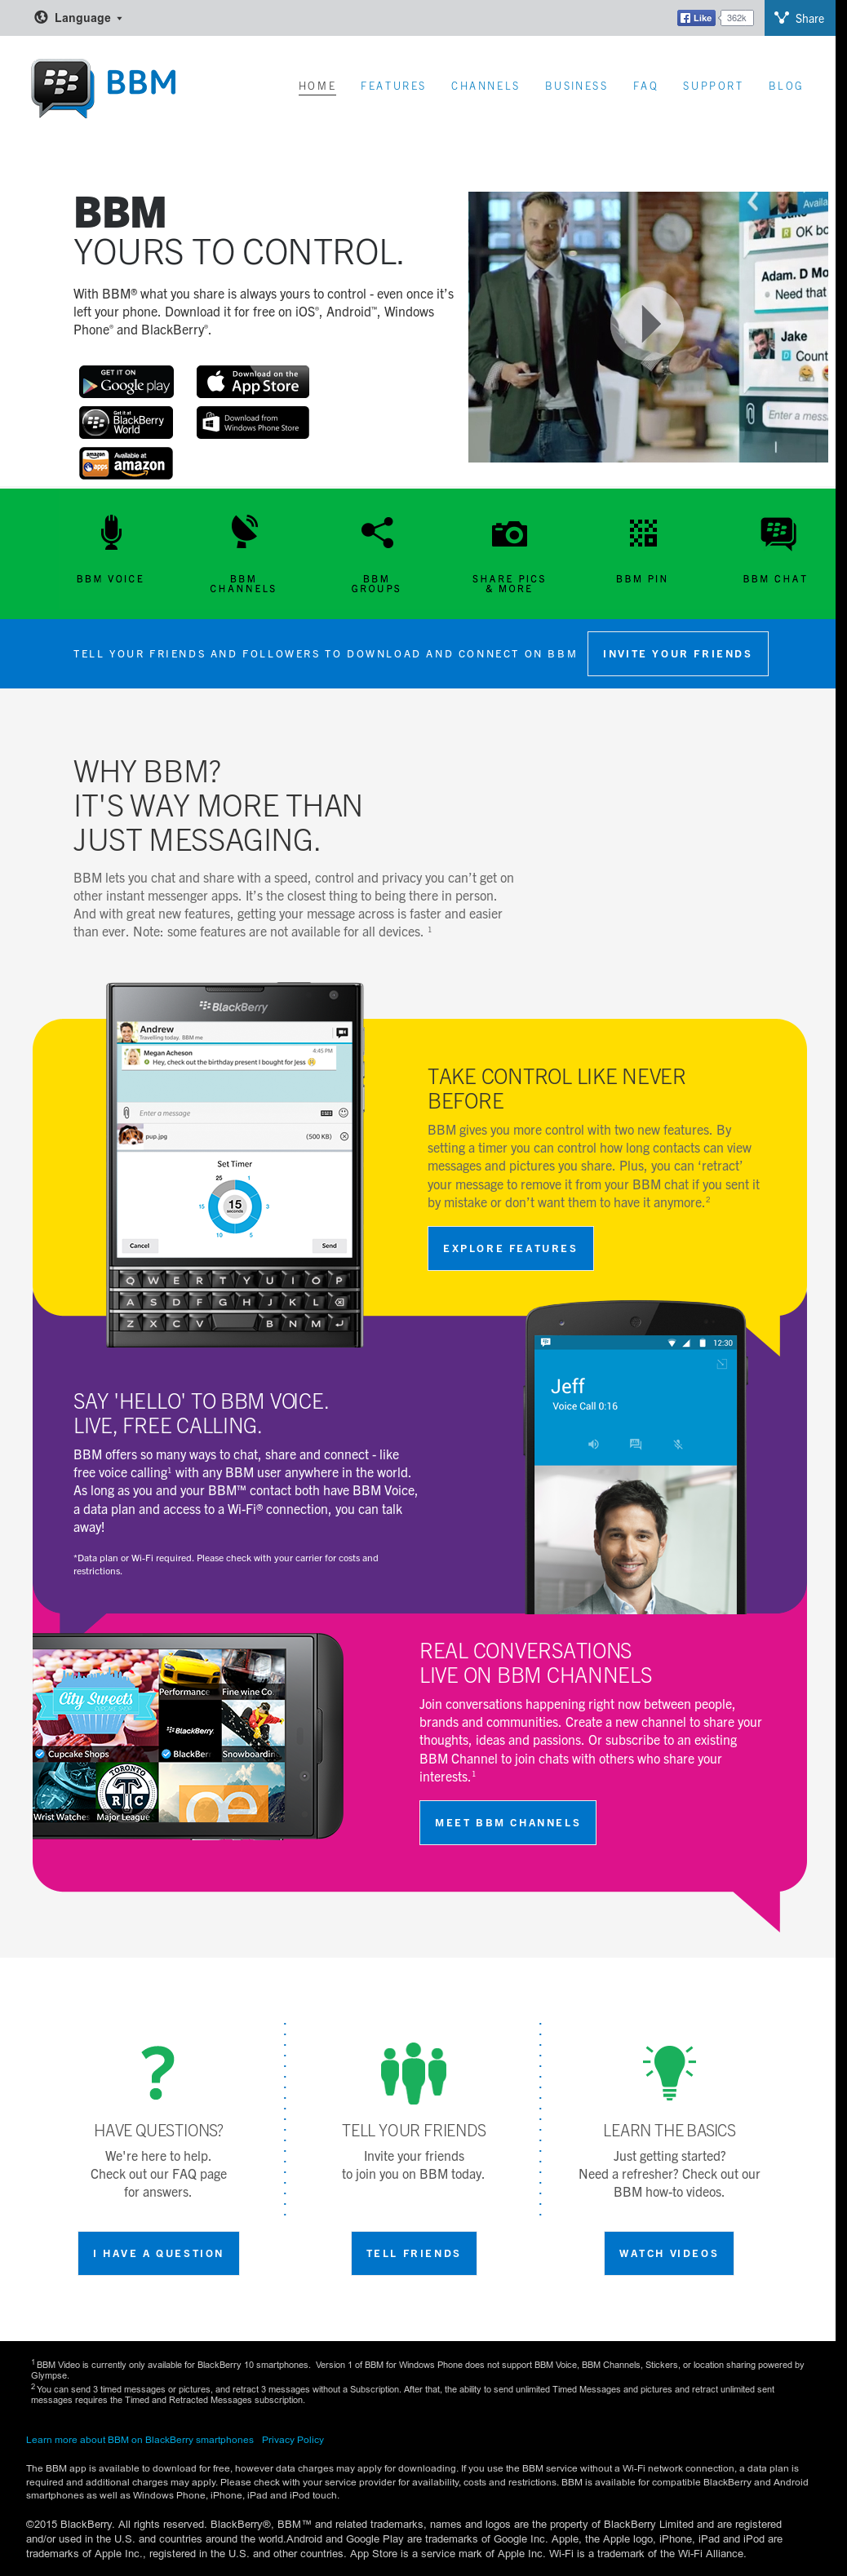 BBM Competitors, Revenue and Employees - Owler Company Profile